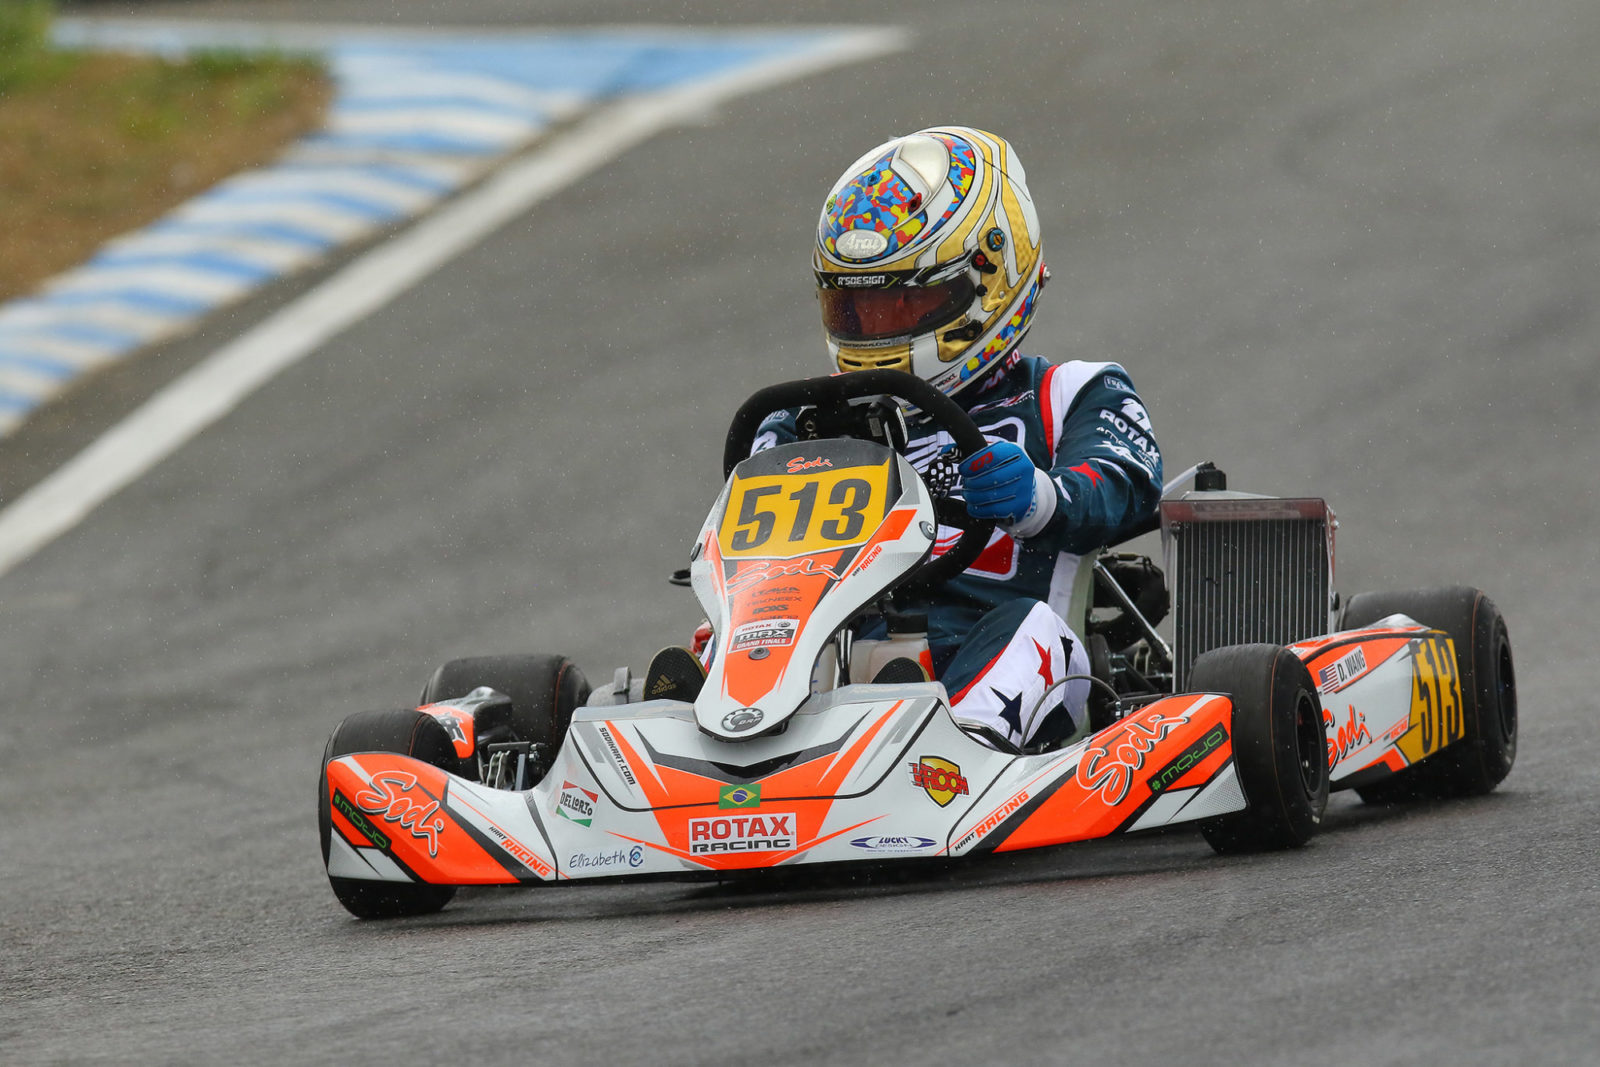 Kart 513 at 2018 Rotax MAX Challenge Grand Finals Brazil